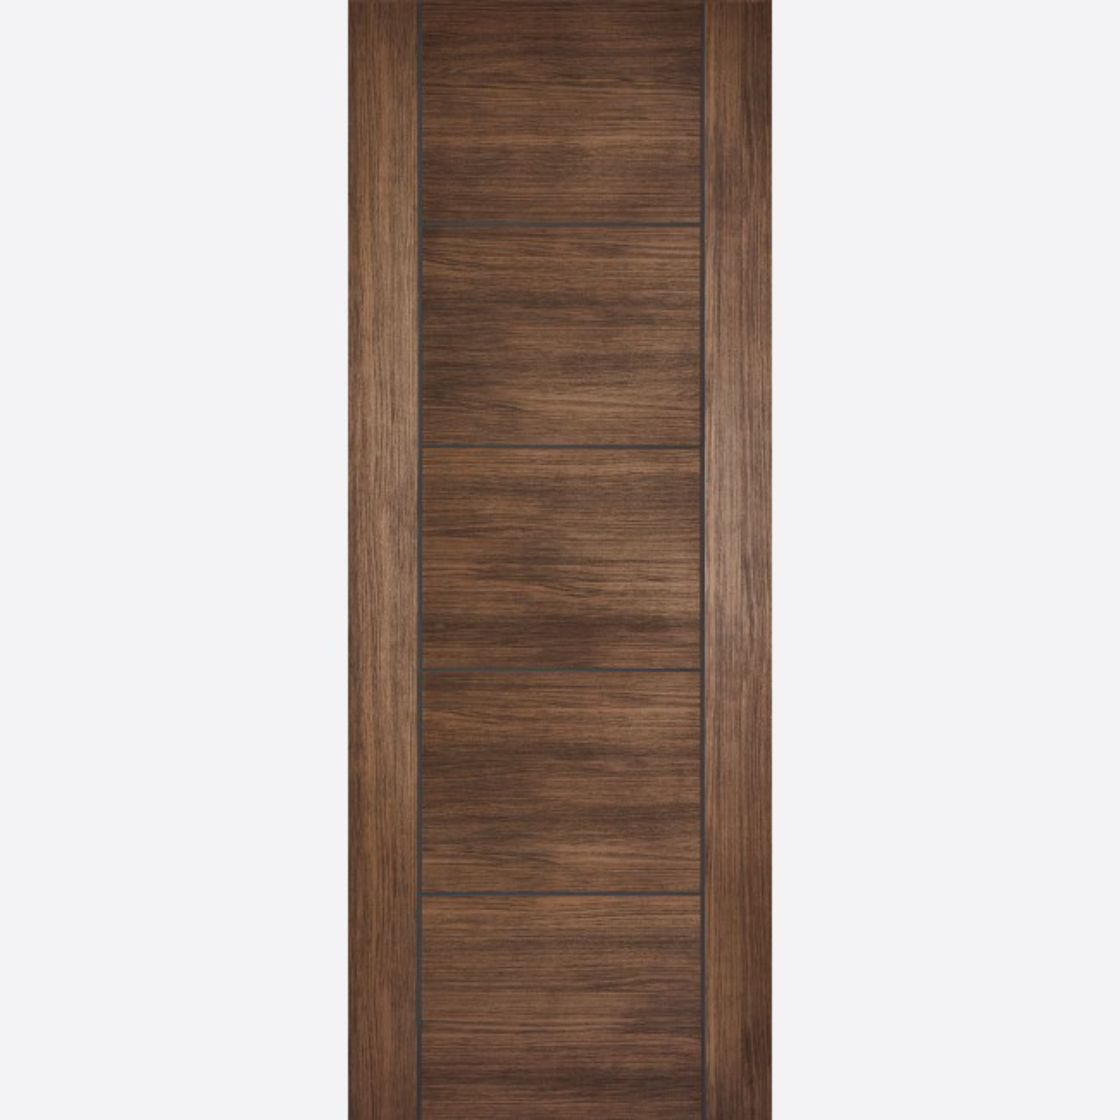 Vancouver Fire Door: FD30 Flush *Pre-Finished Walnut Laminate* 44mm Internal Firecheck - LPD Laminate Fire Doors